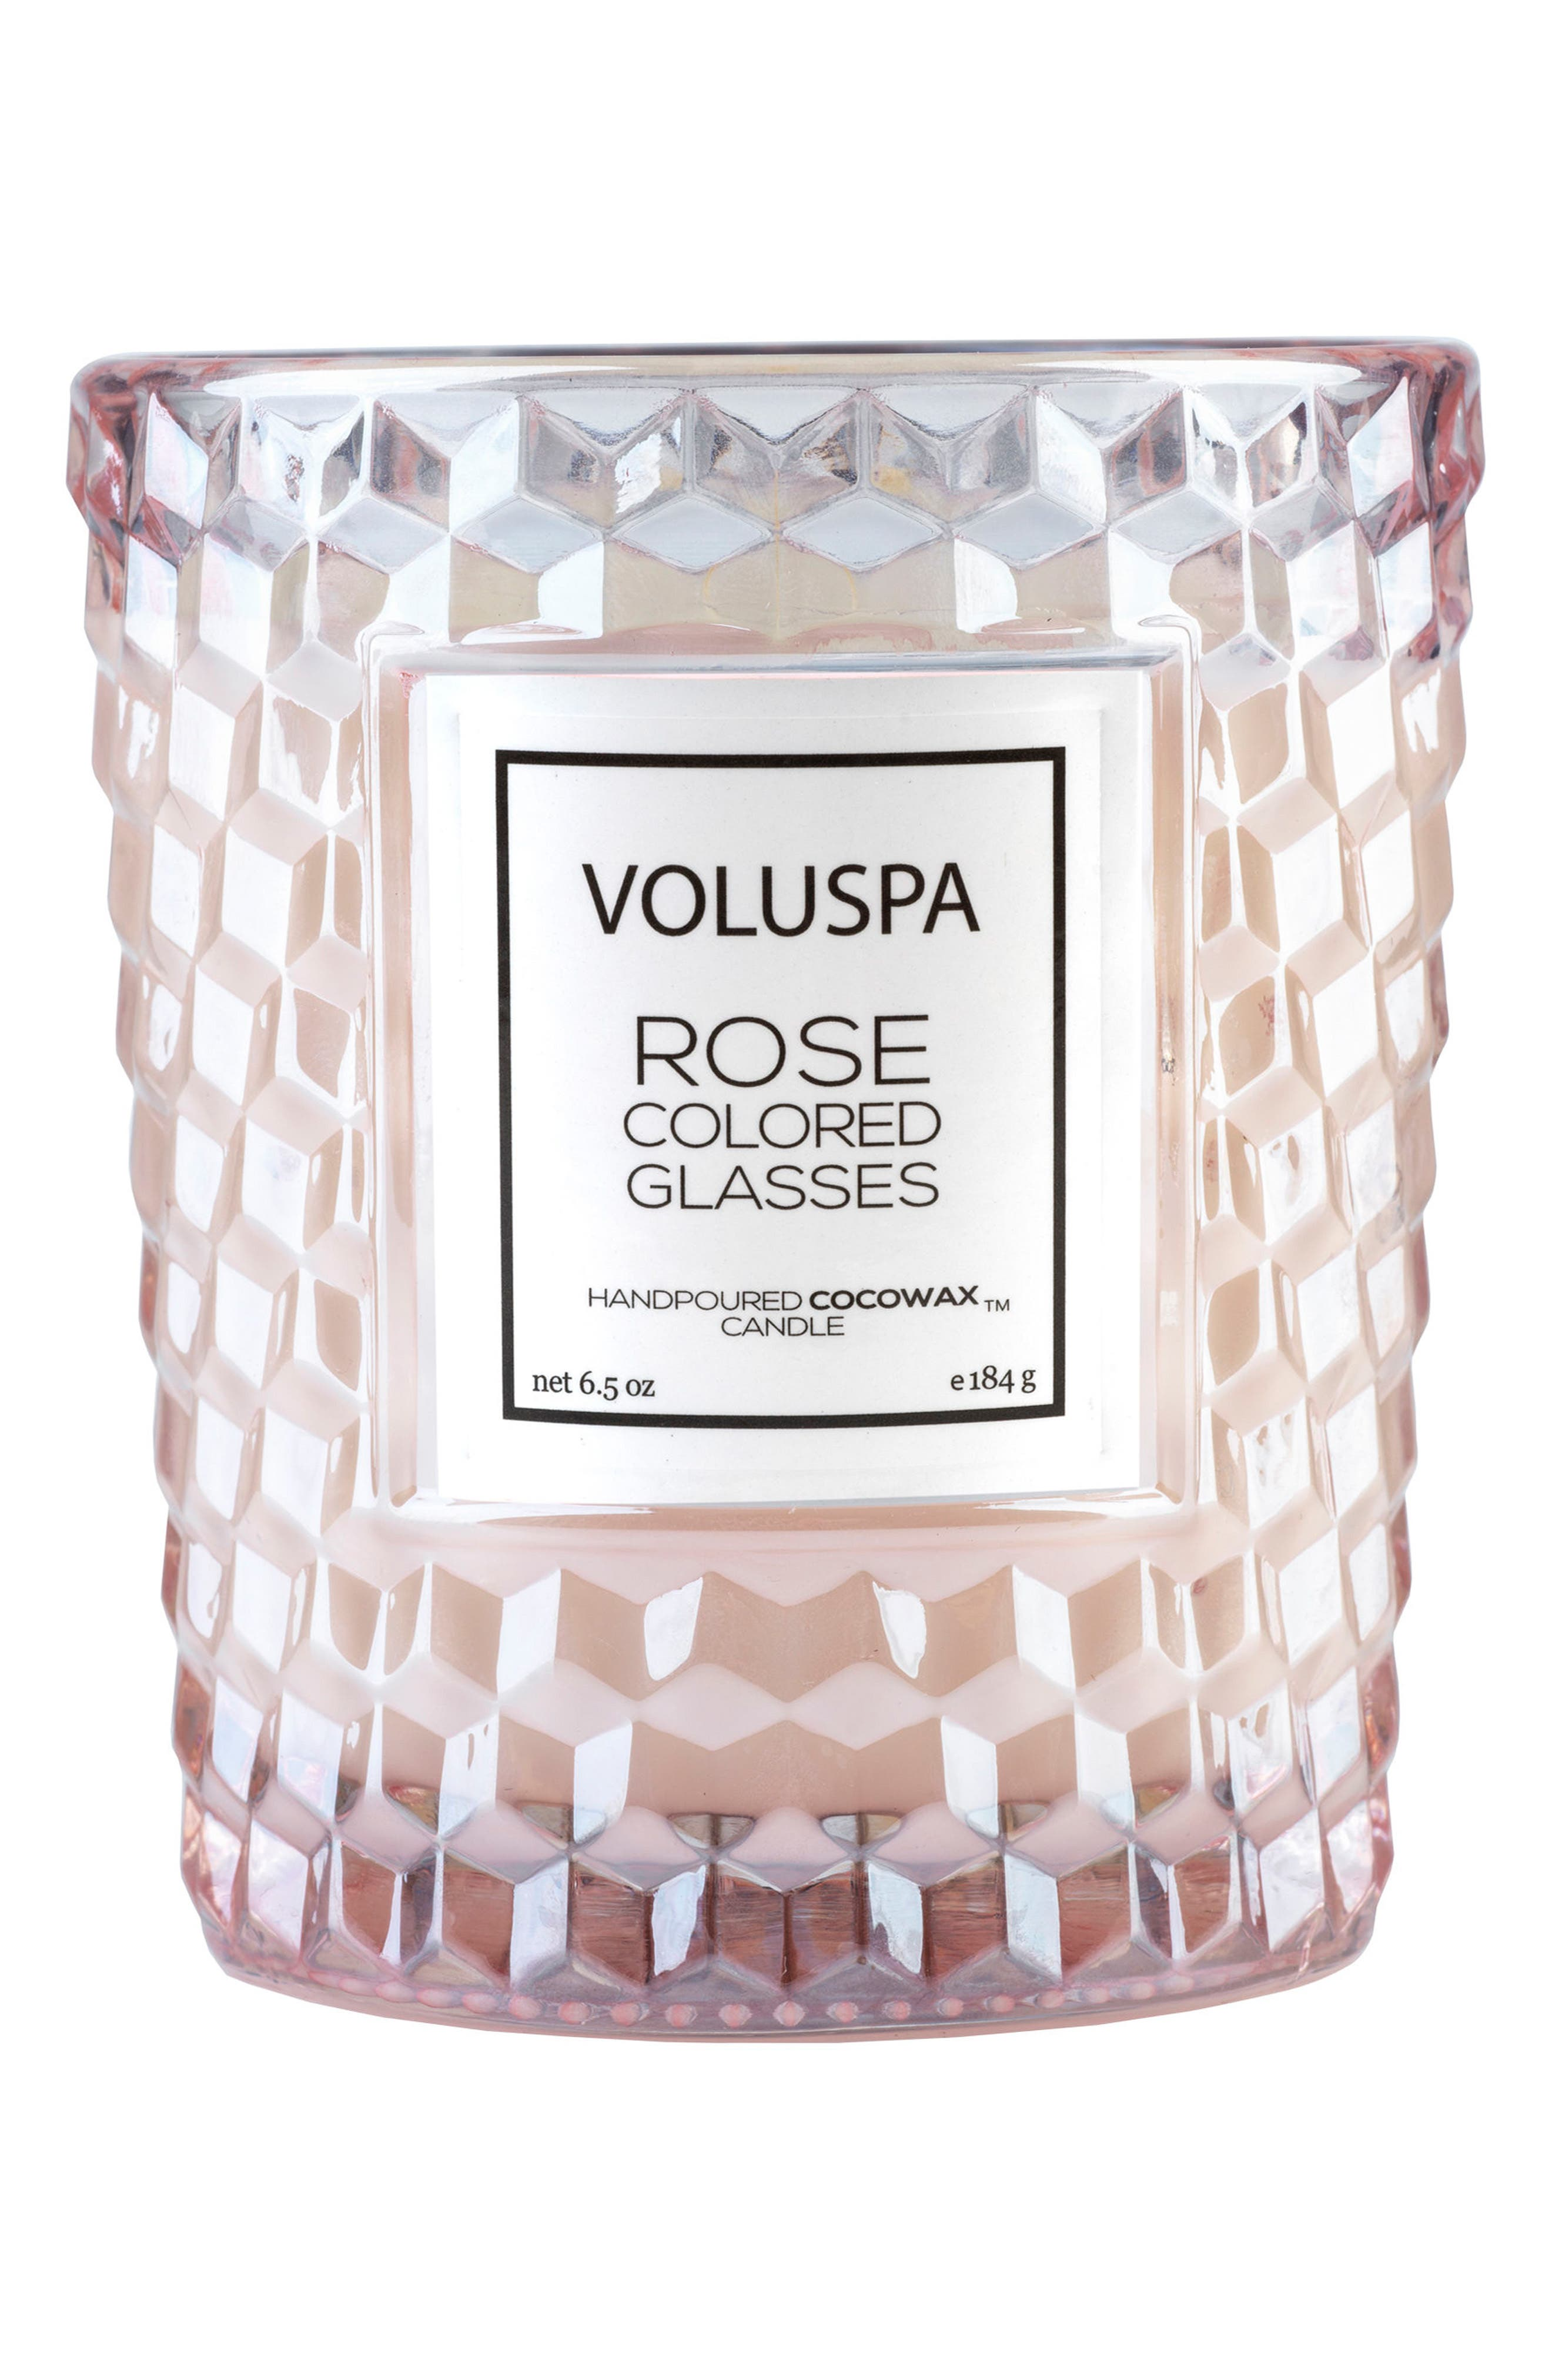 Roses Classic Textured Glass Candle,                             Main thumbnail 1, color,                             Rose Colored Glasses